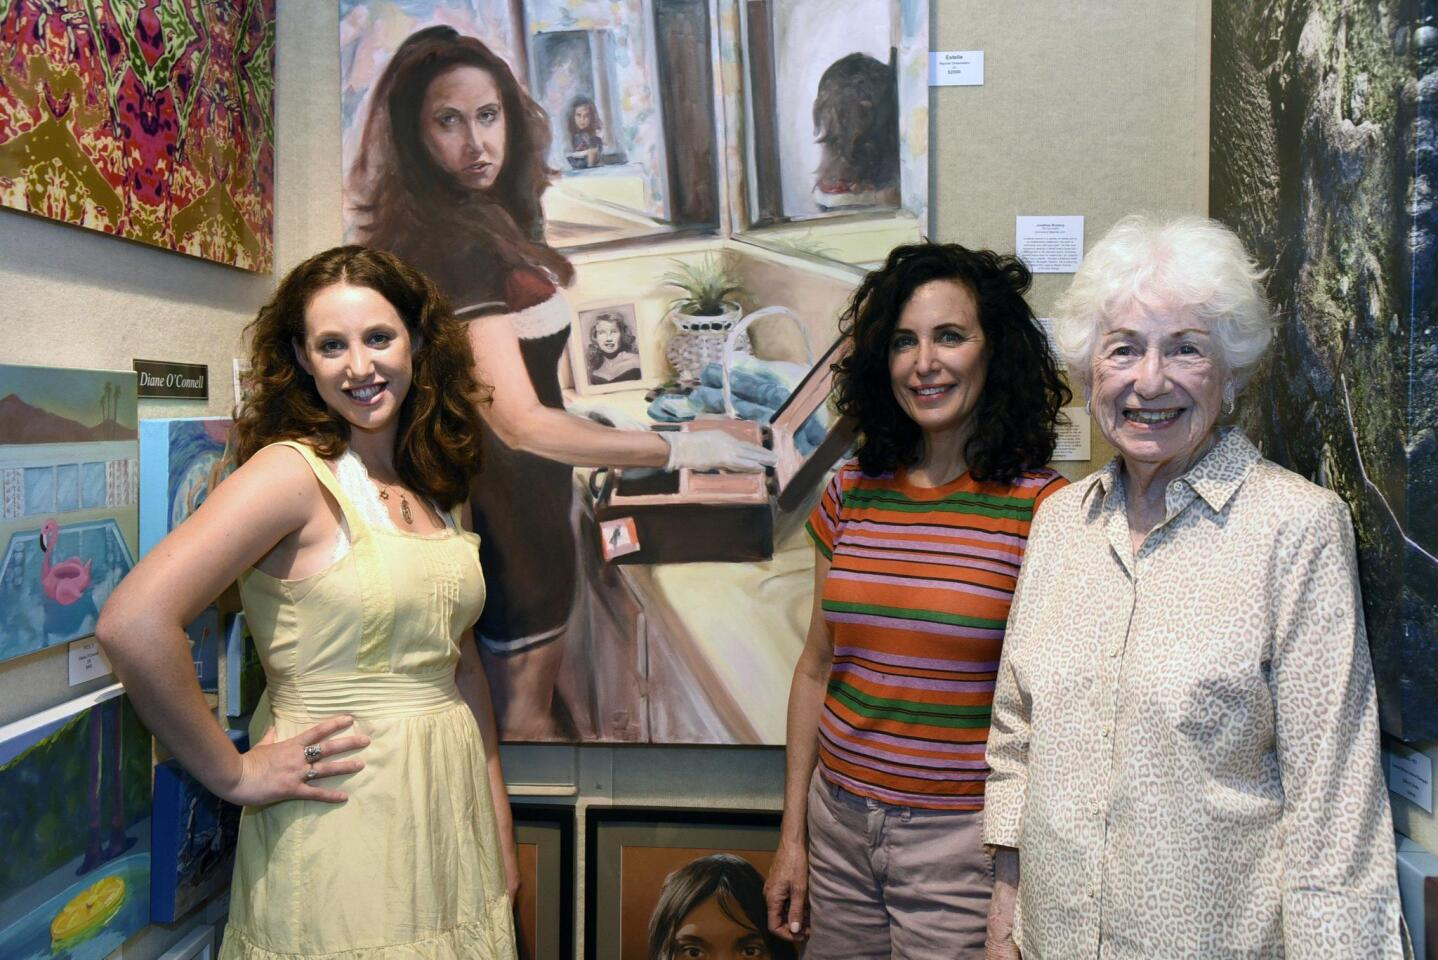 Artist Rachel Greenstein poses by her self-portrait with mom Carrie Greenstein and Grandmother Inge Feinswog